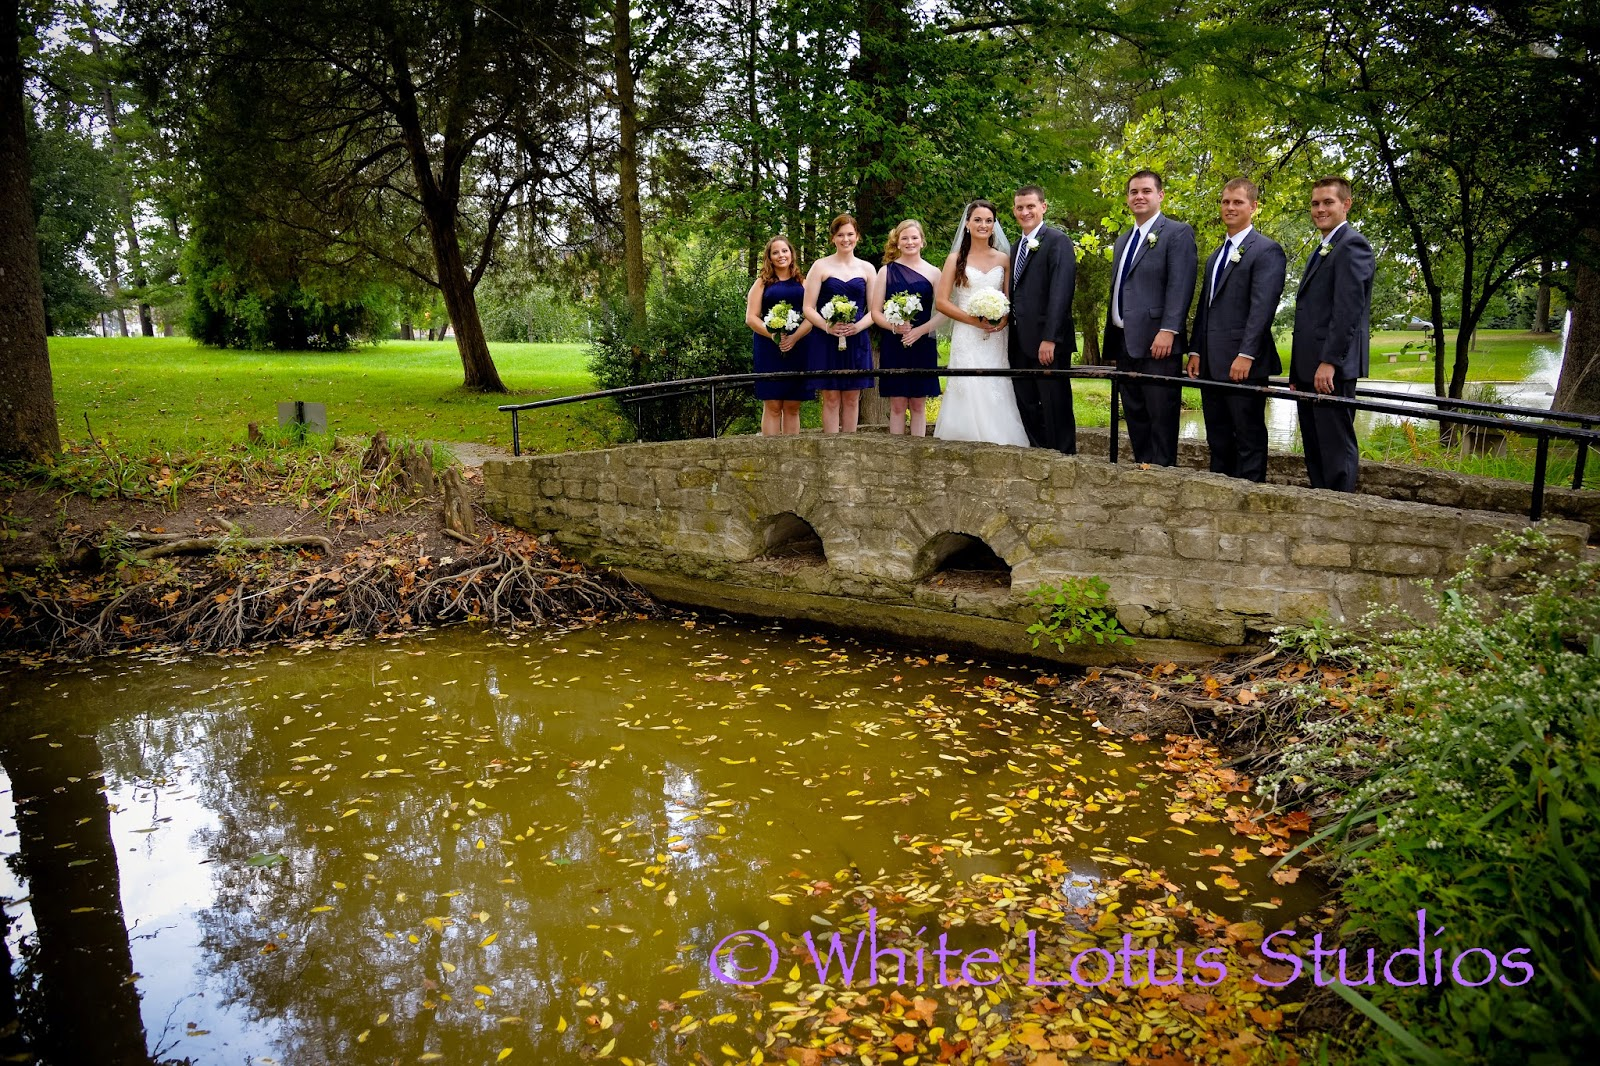 9•20•14 Kristy and Josh\'s Wedding! | White Lotus Studios Wedding ...